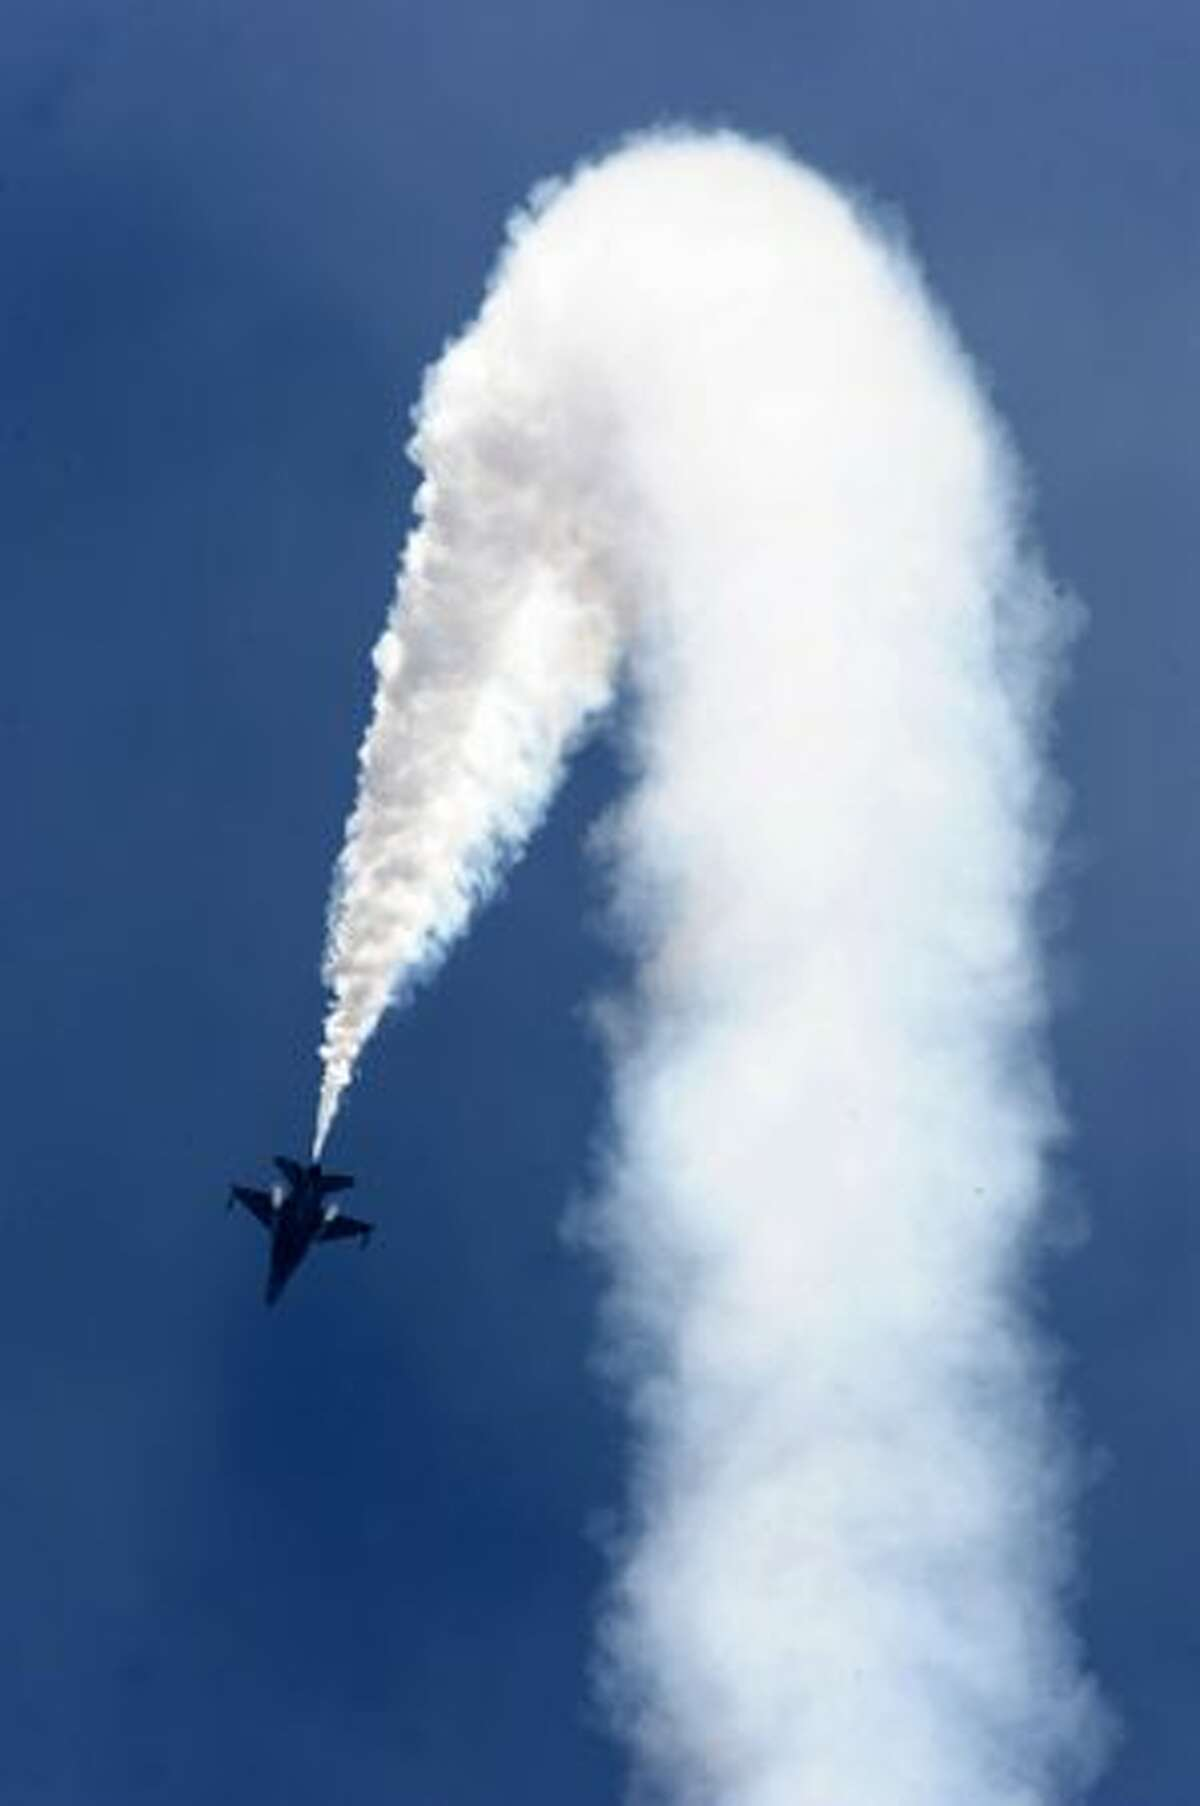 A Republic of Singapore Air Force F-16 performs during a flight display at the Singapore Airshow 2010 on Feb. 2, 2010.